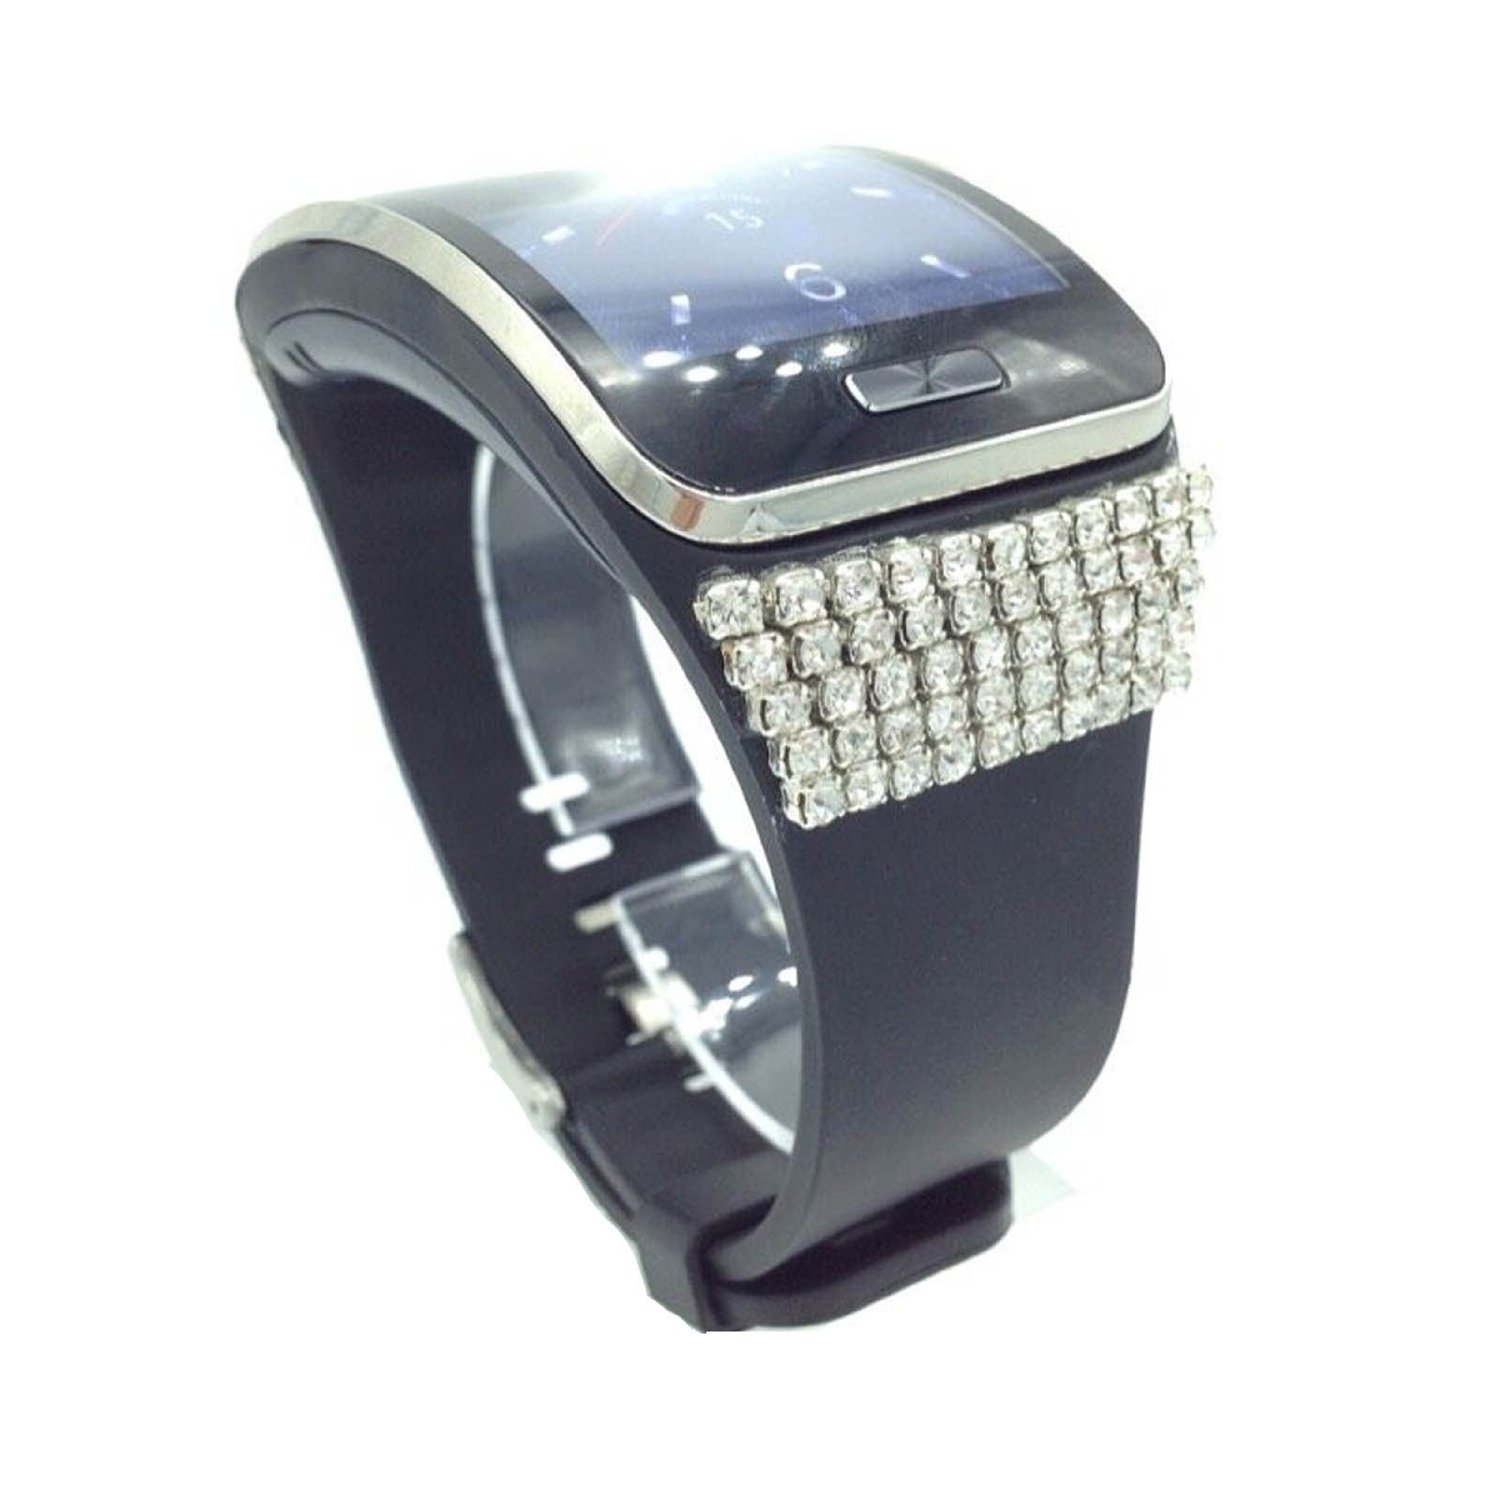 Bling Crystal Wrist Straps Wrist Bands for Samsung Gear S Smartwatch Smart Watch (Black)